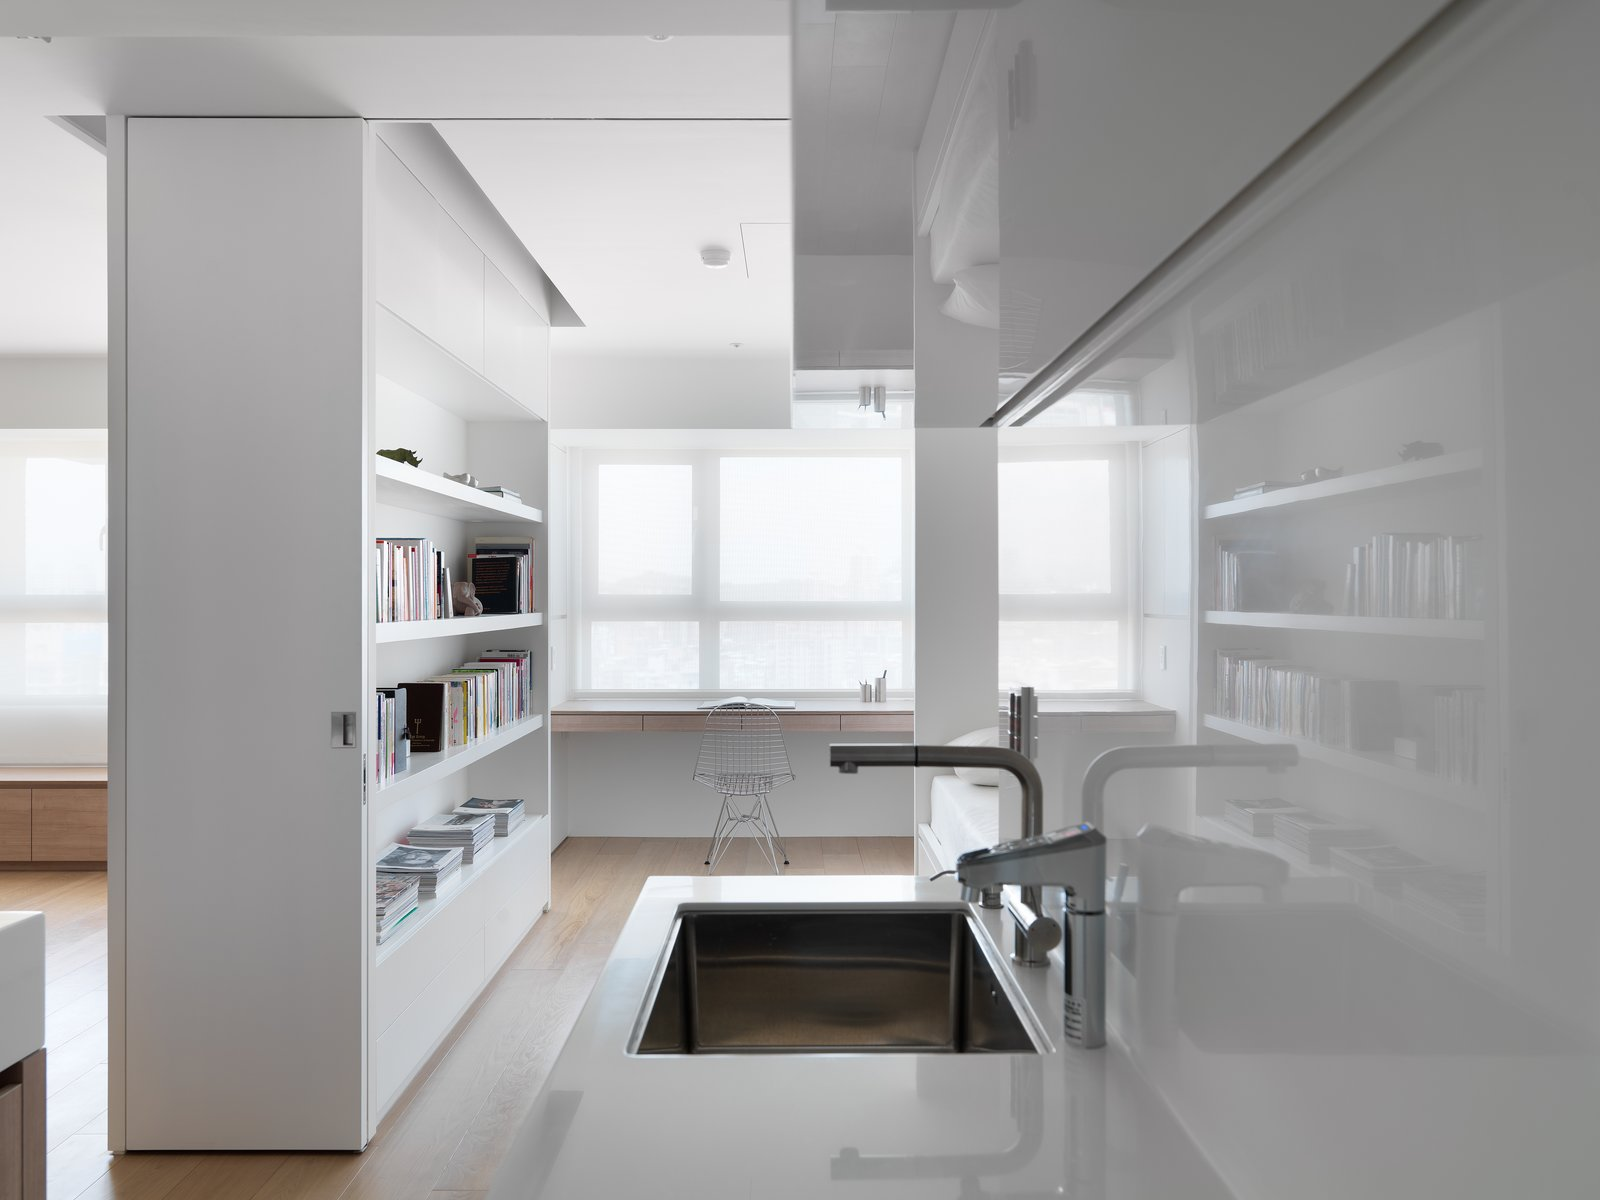 The surface of materials are chosen to meet function, and also add reflection or depth for the space.  KT Apartment by Marty Chou Architecture